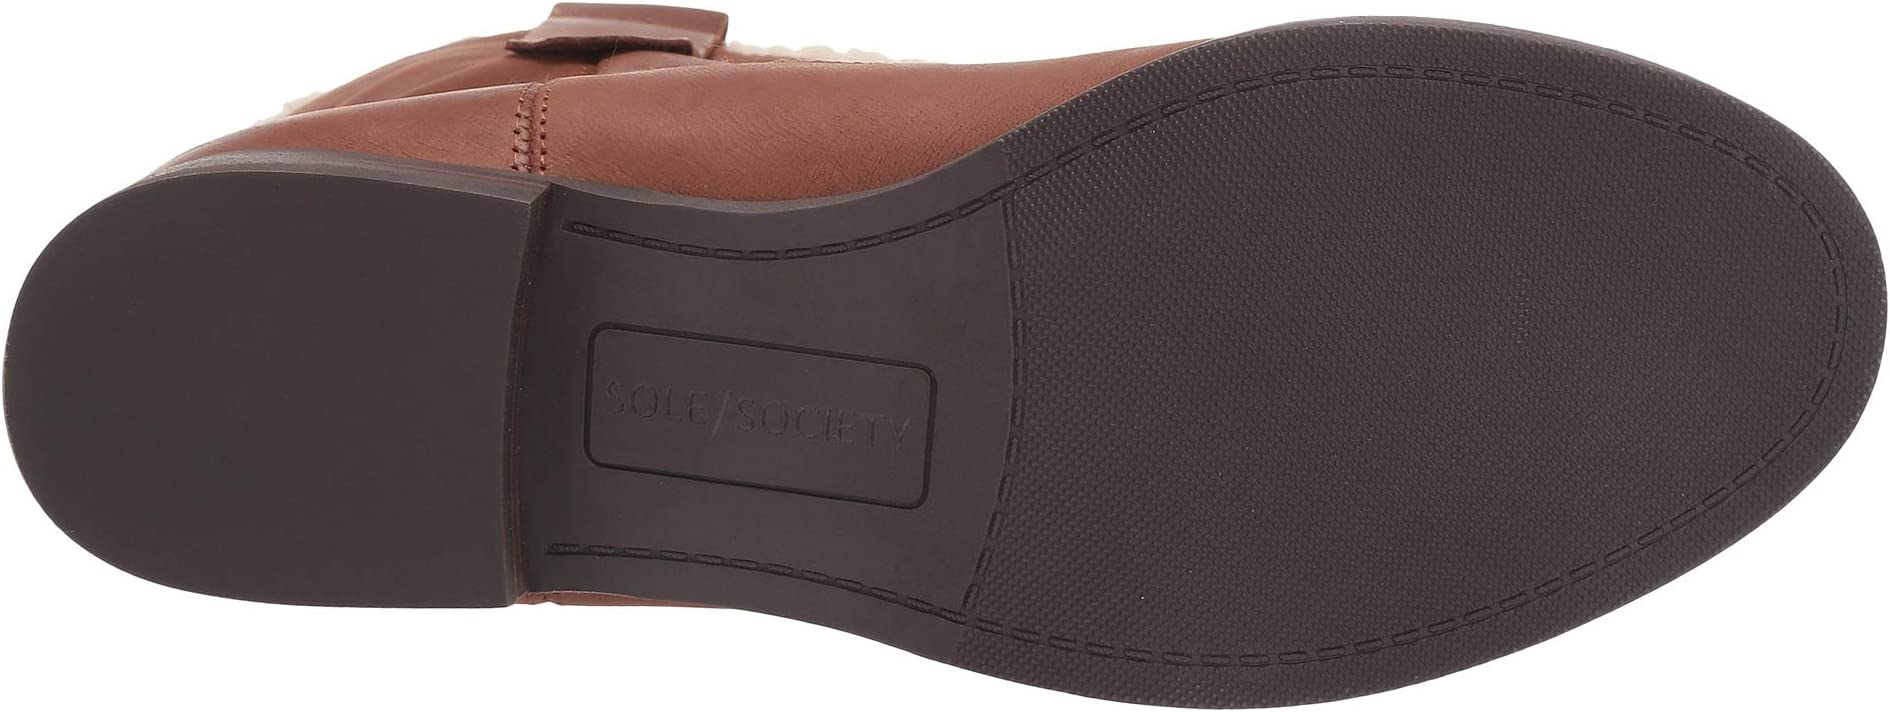 SOLE / SOCIETY Verona   Women's shoes   2020 Newest